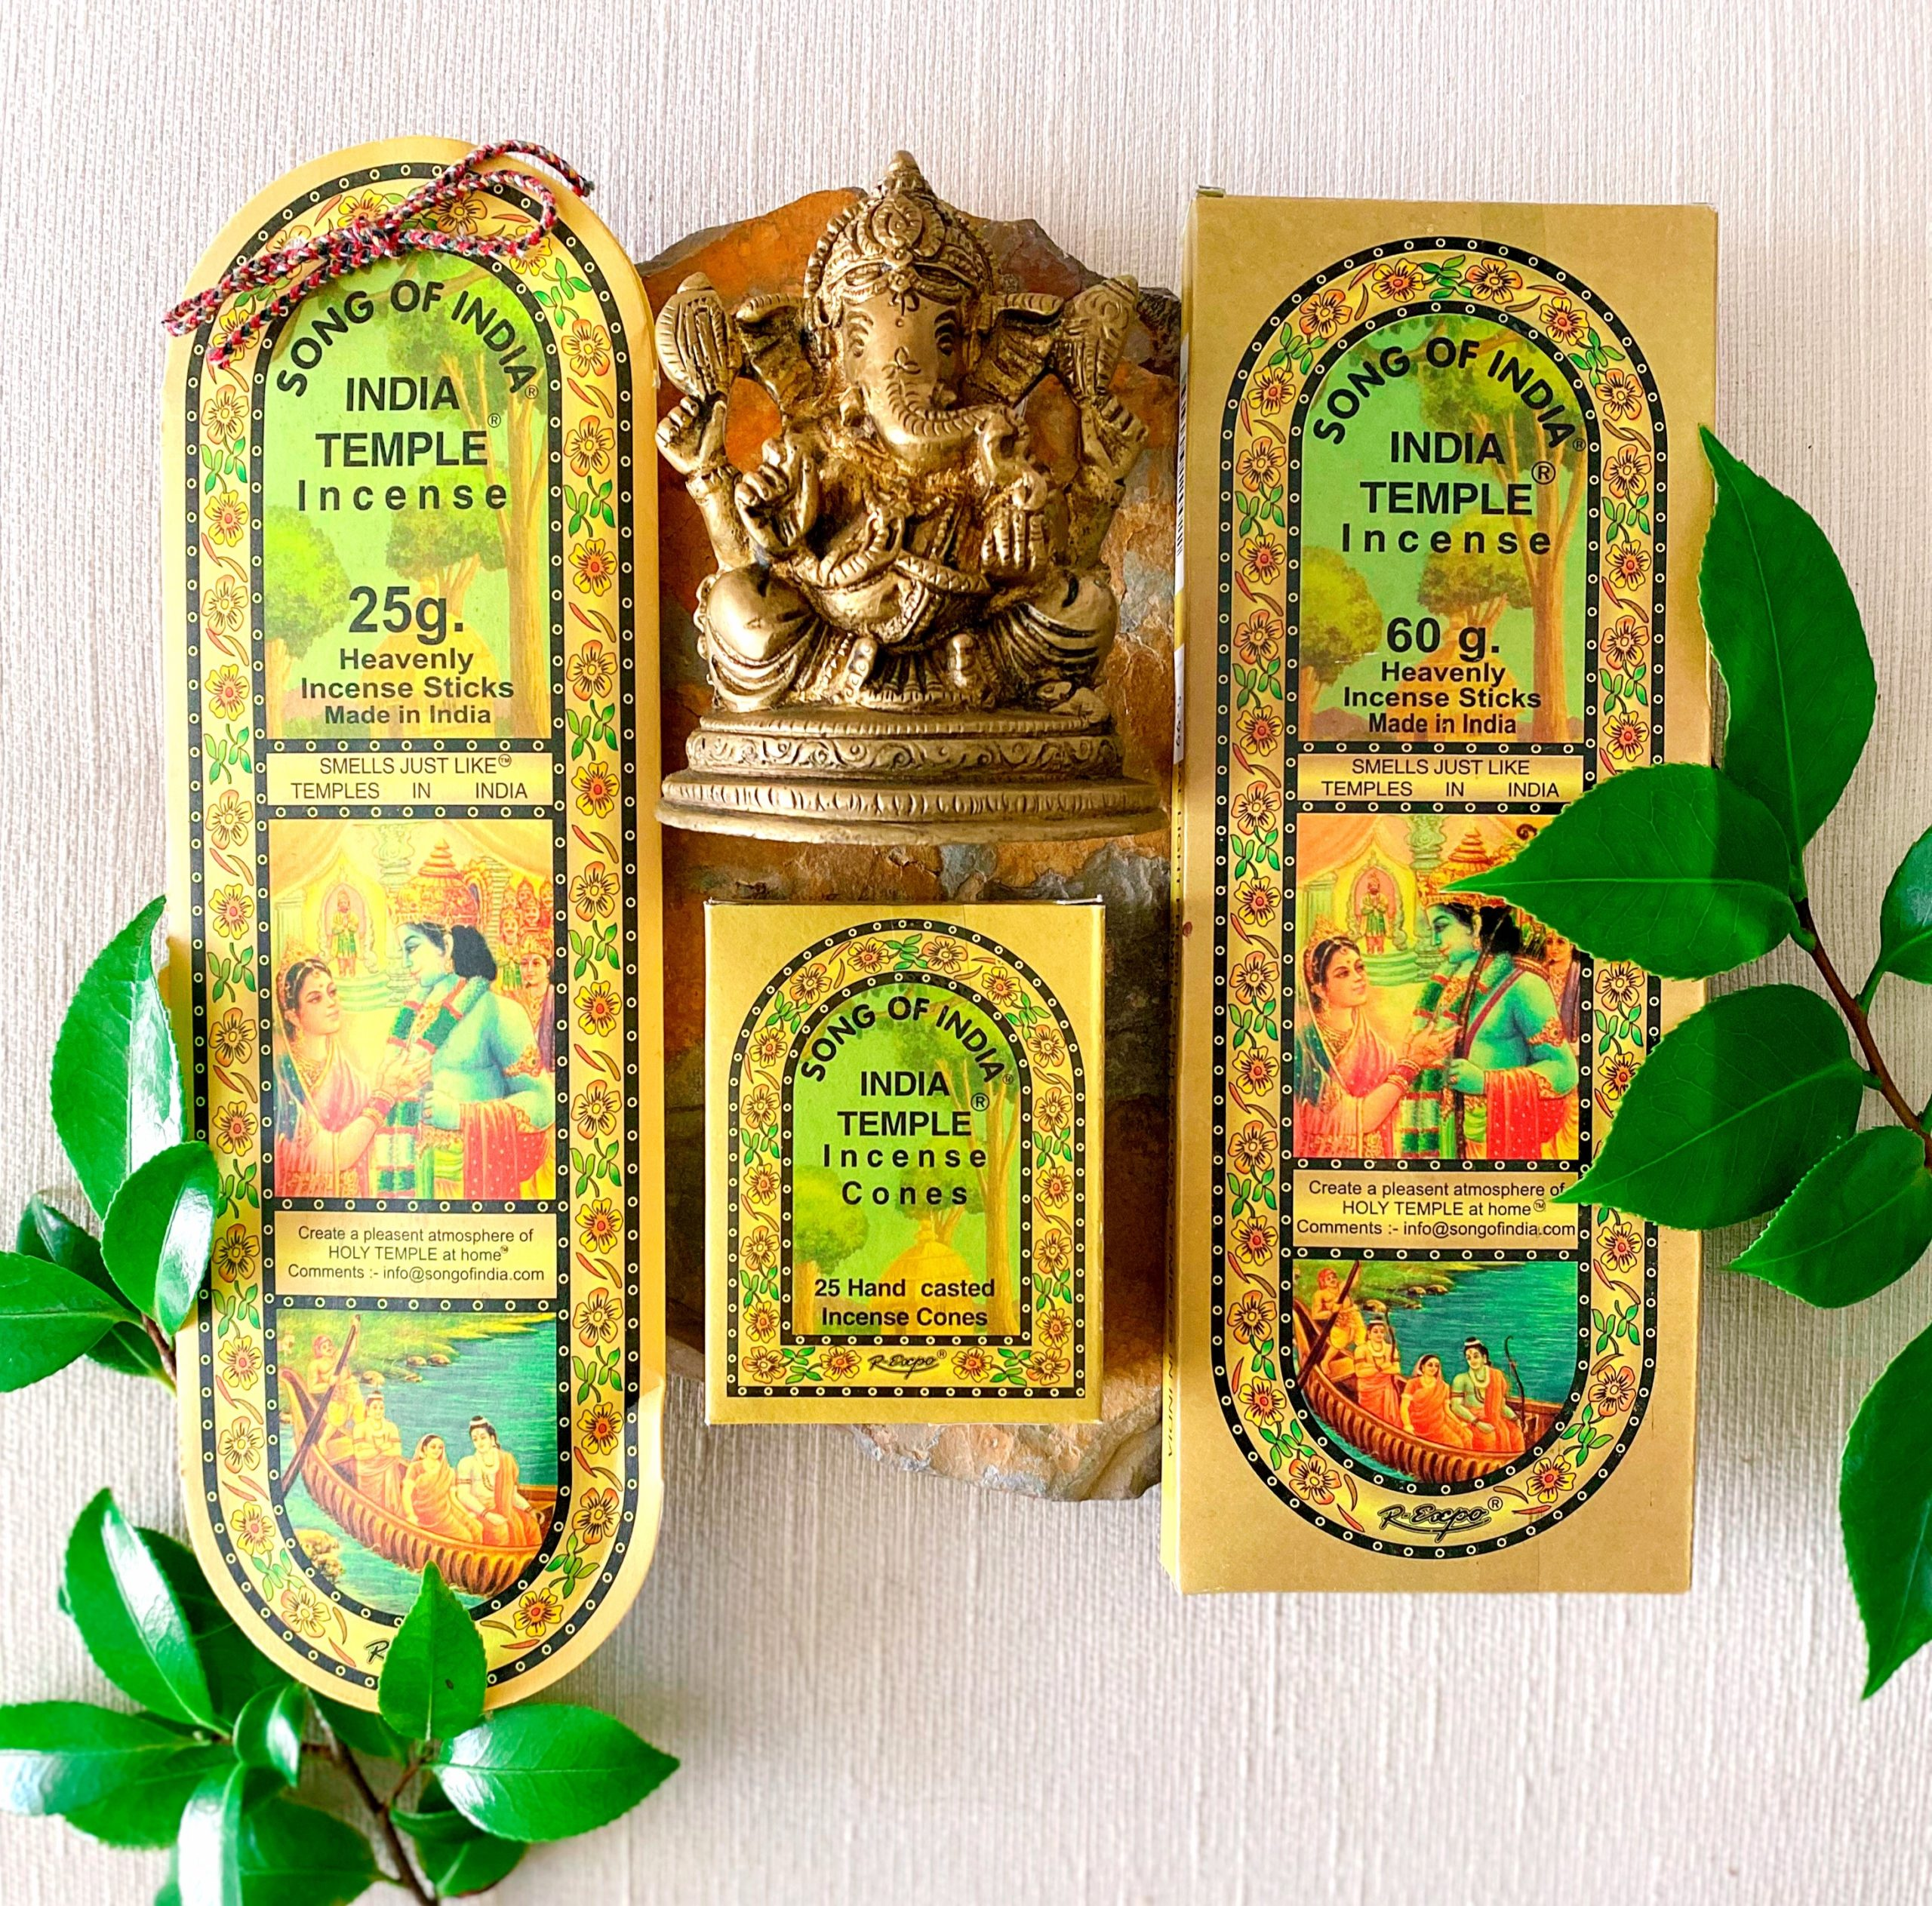 Song of India Incense